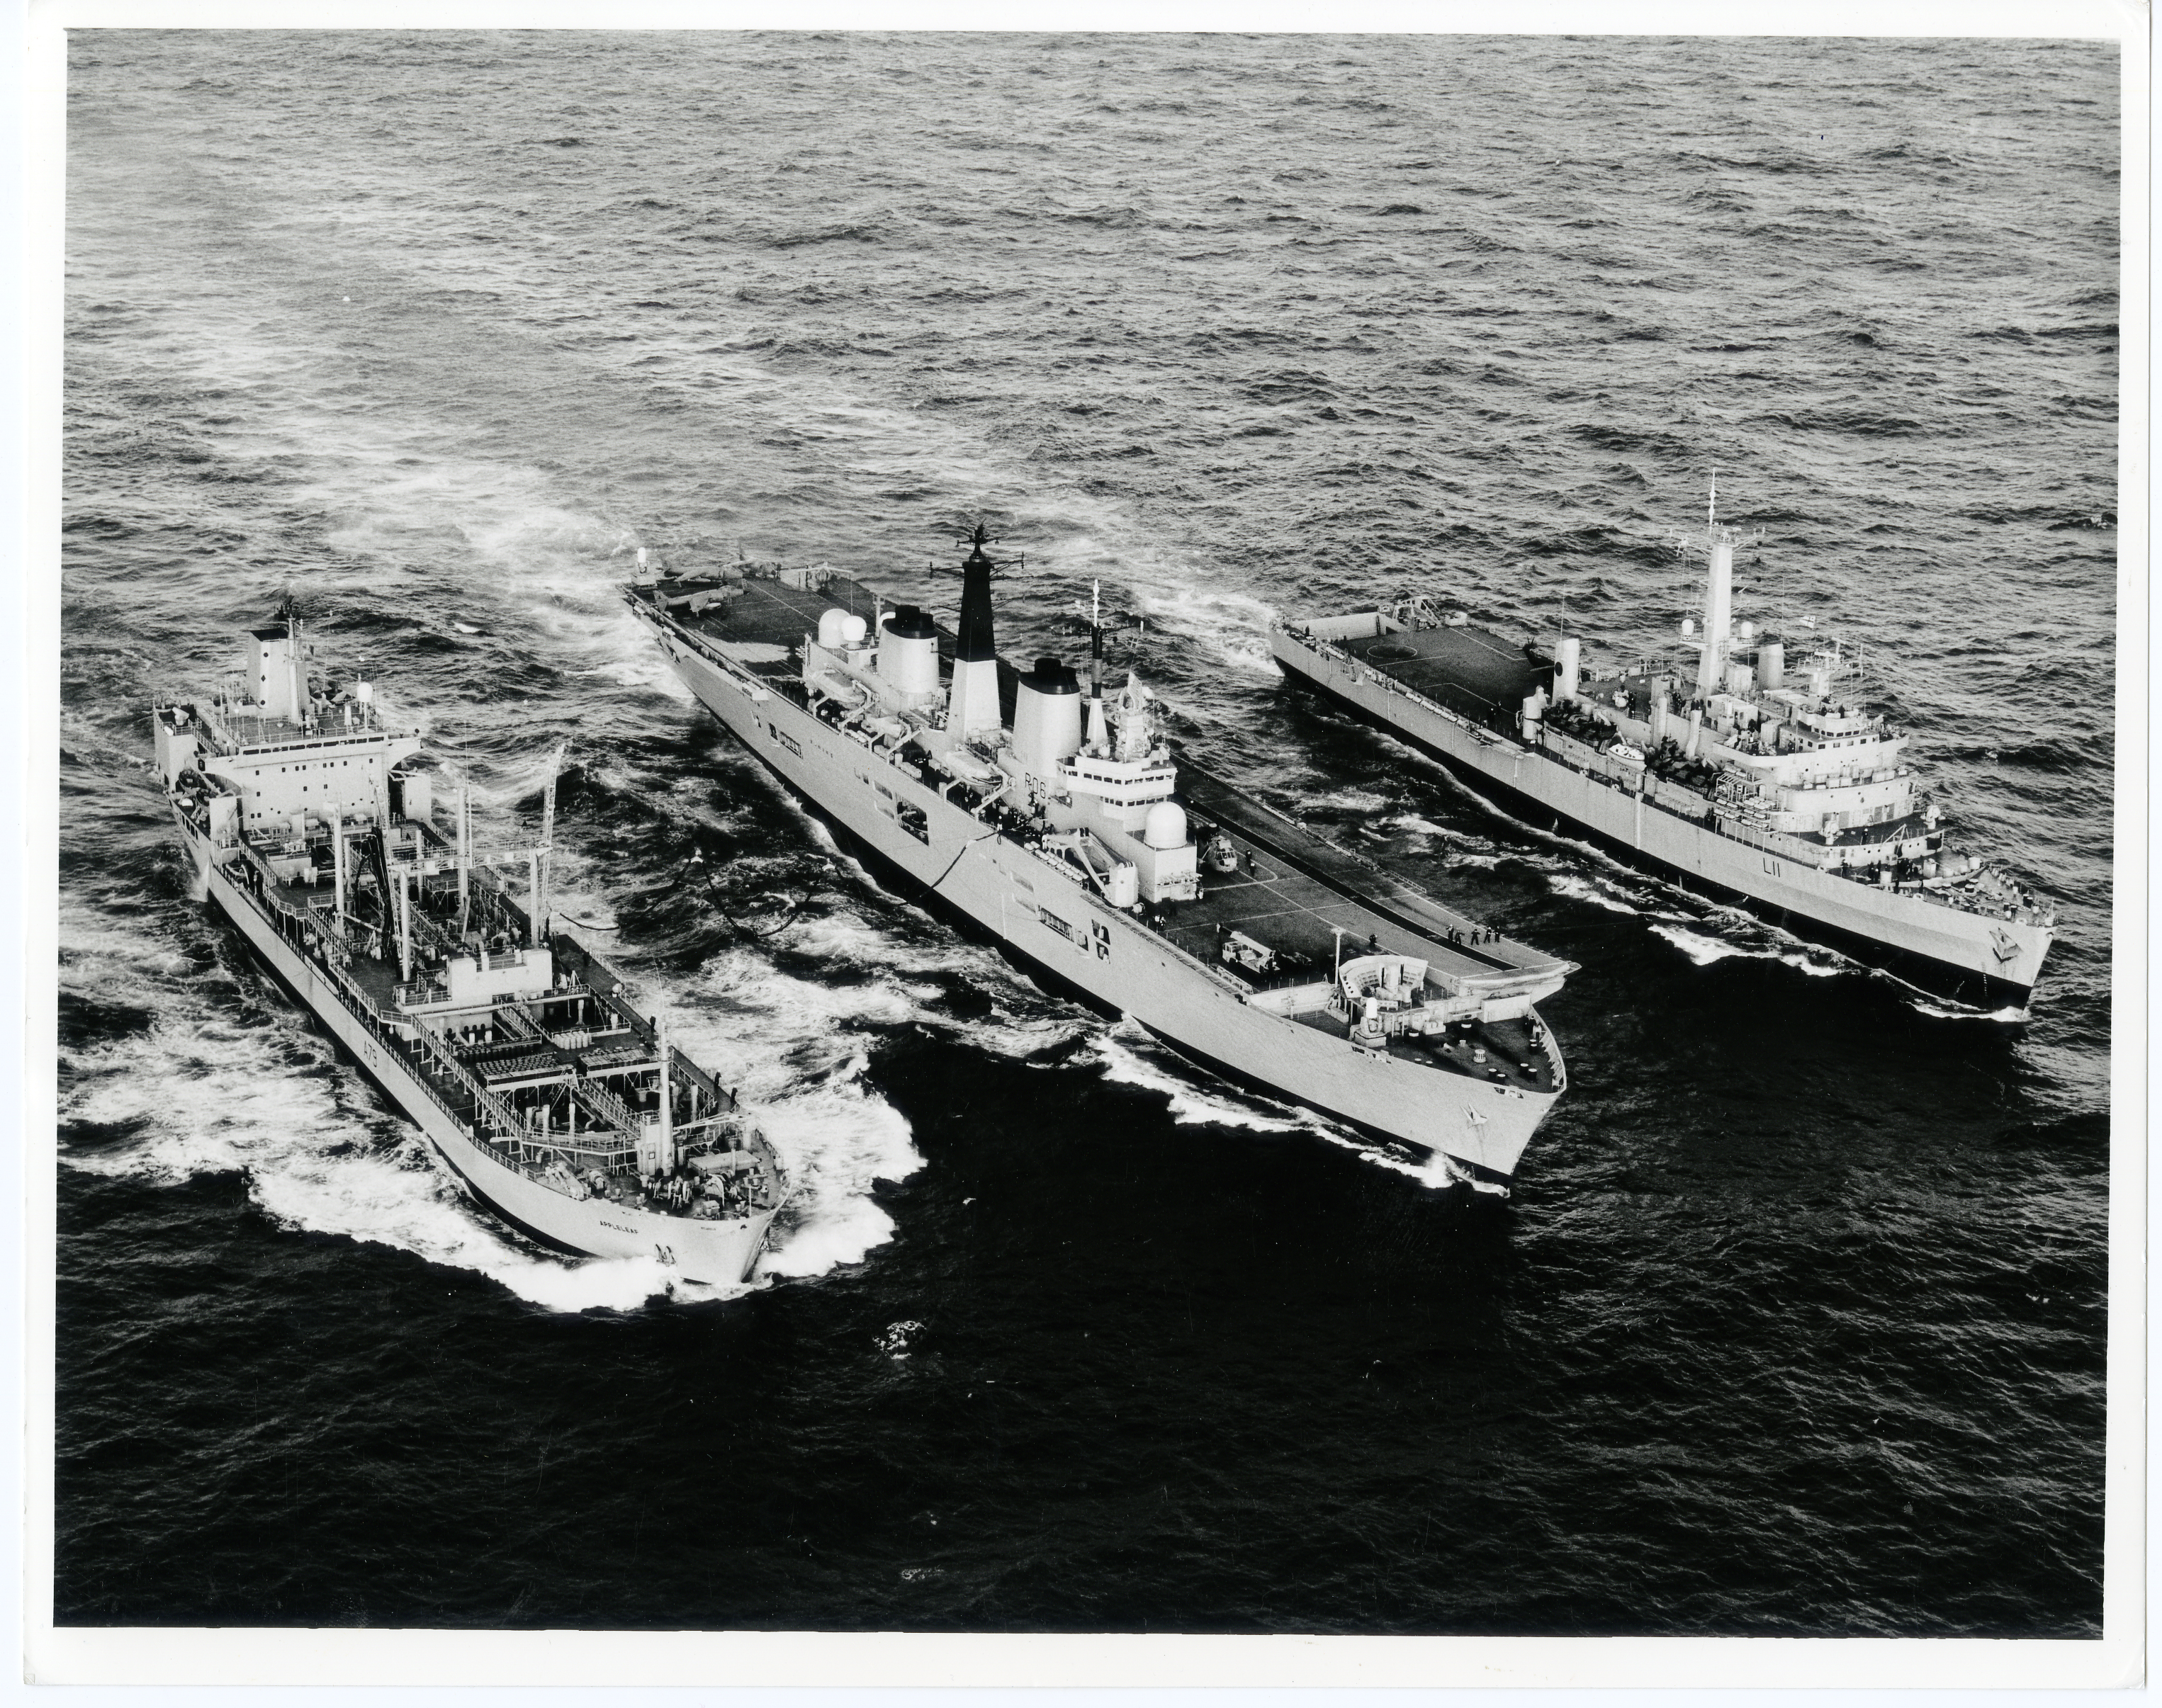 88-8-RAS RFA Appleleaf, Illustrious, Intrepid